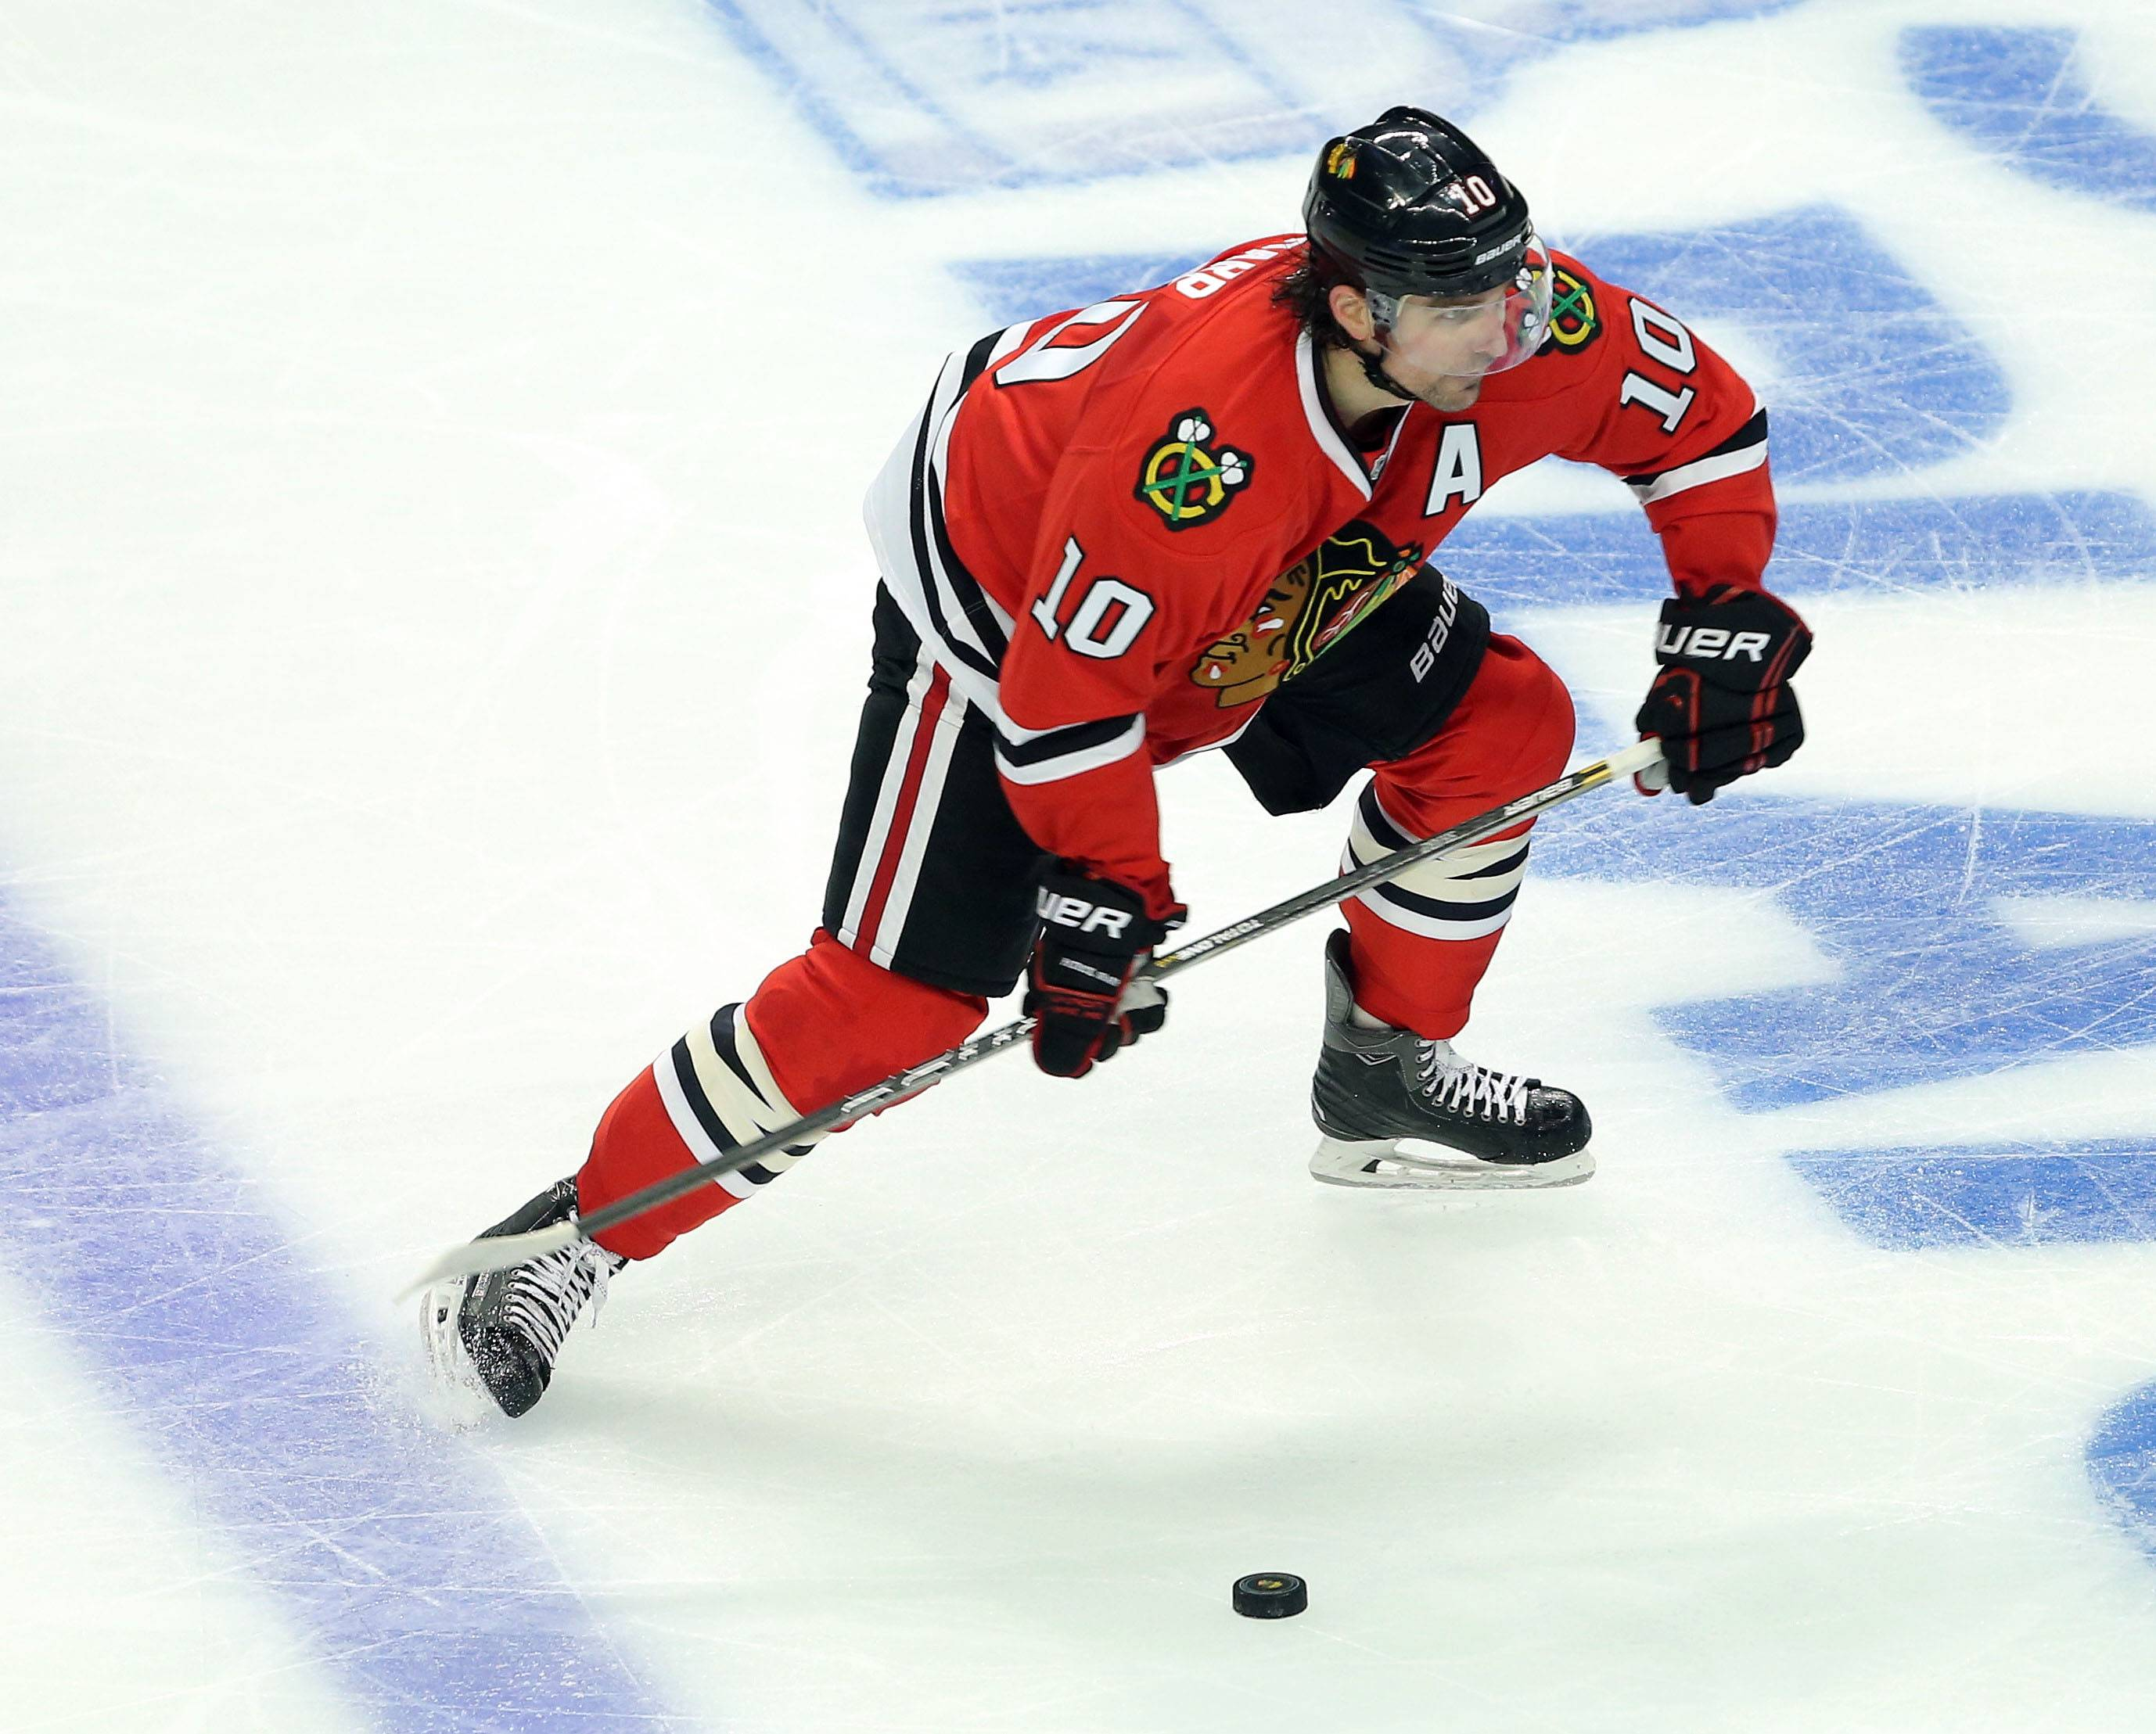 Blackhawks left wing Patrick Sharp ran into a scoring drought against St. Louis, but he broke through on Sunday to end the Blues' season.